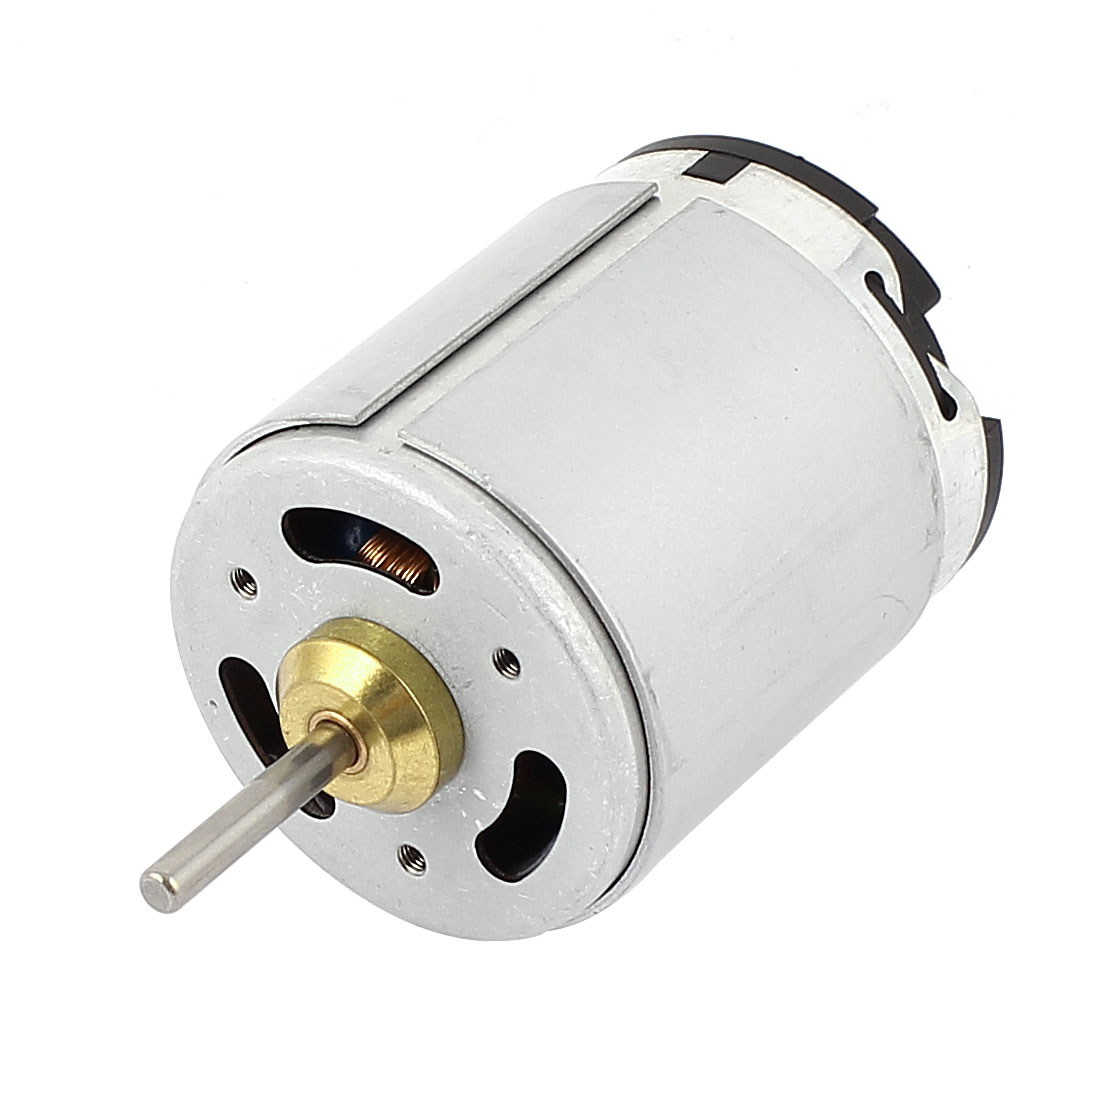 DC 24V 4700RPM 4mm Dia Shaft Cylinder 2 Pin Terminals Electric Magnetic DC Motor